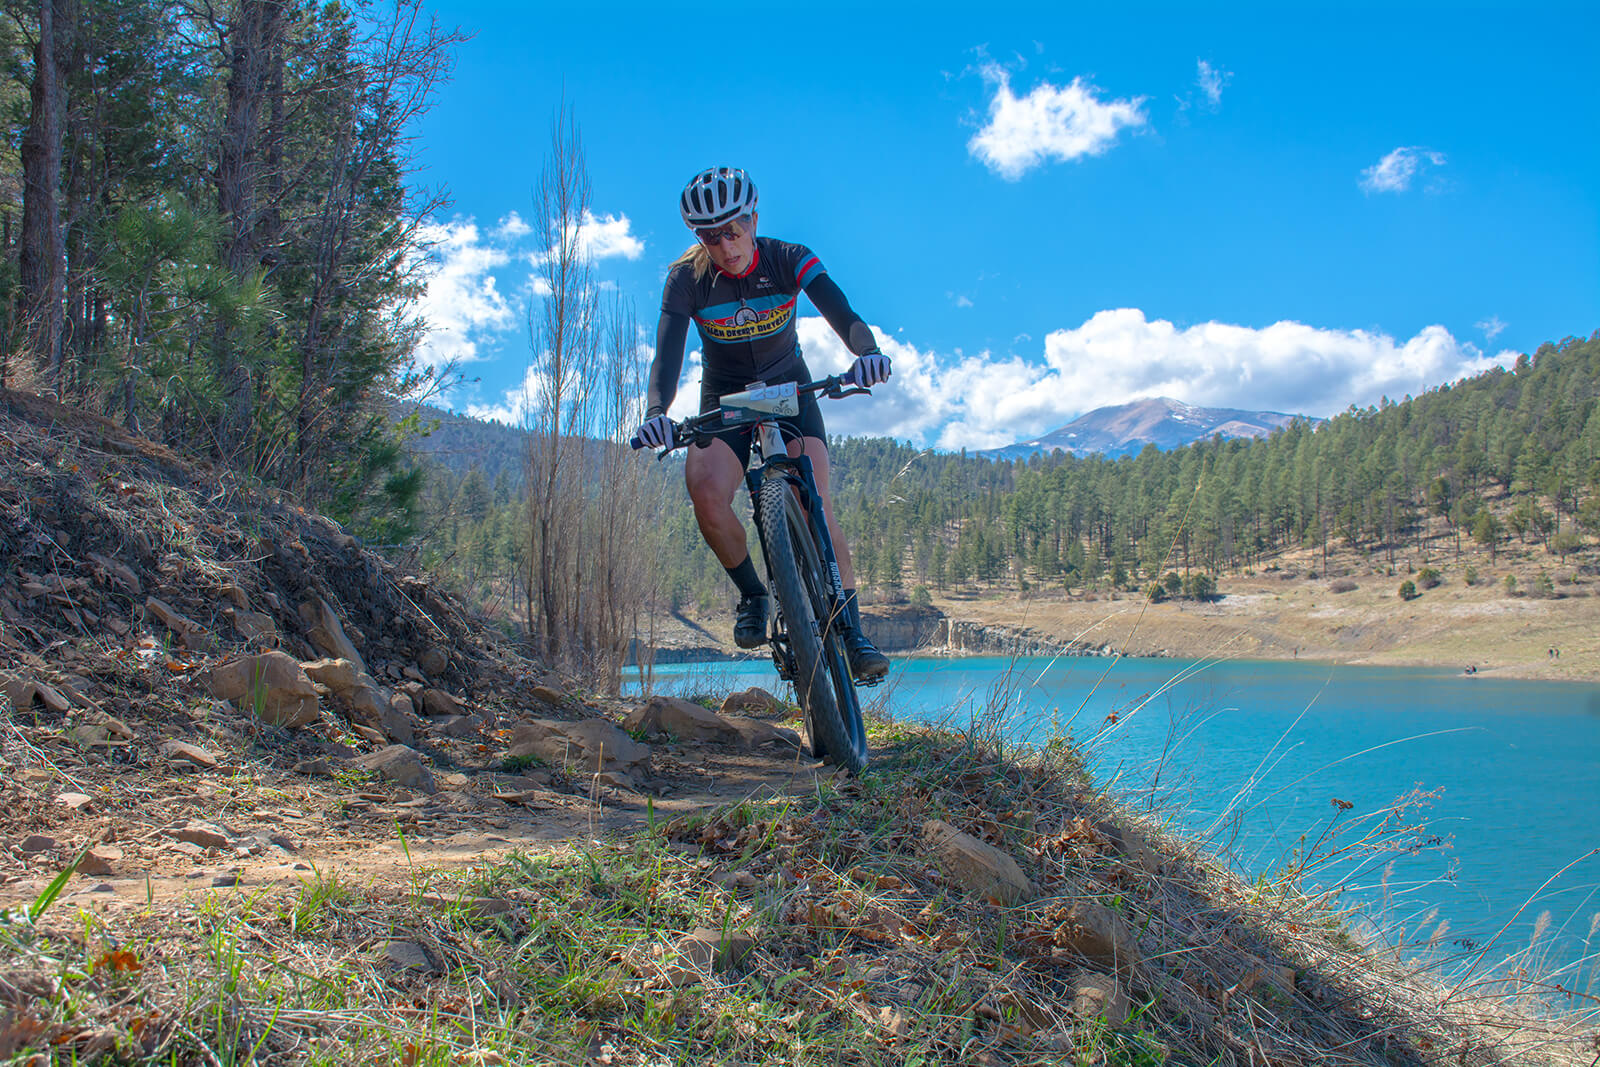 Mountain biking around Grindstone Lake is one of the best outdoor activities in Ruidoso, New Mexico